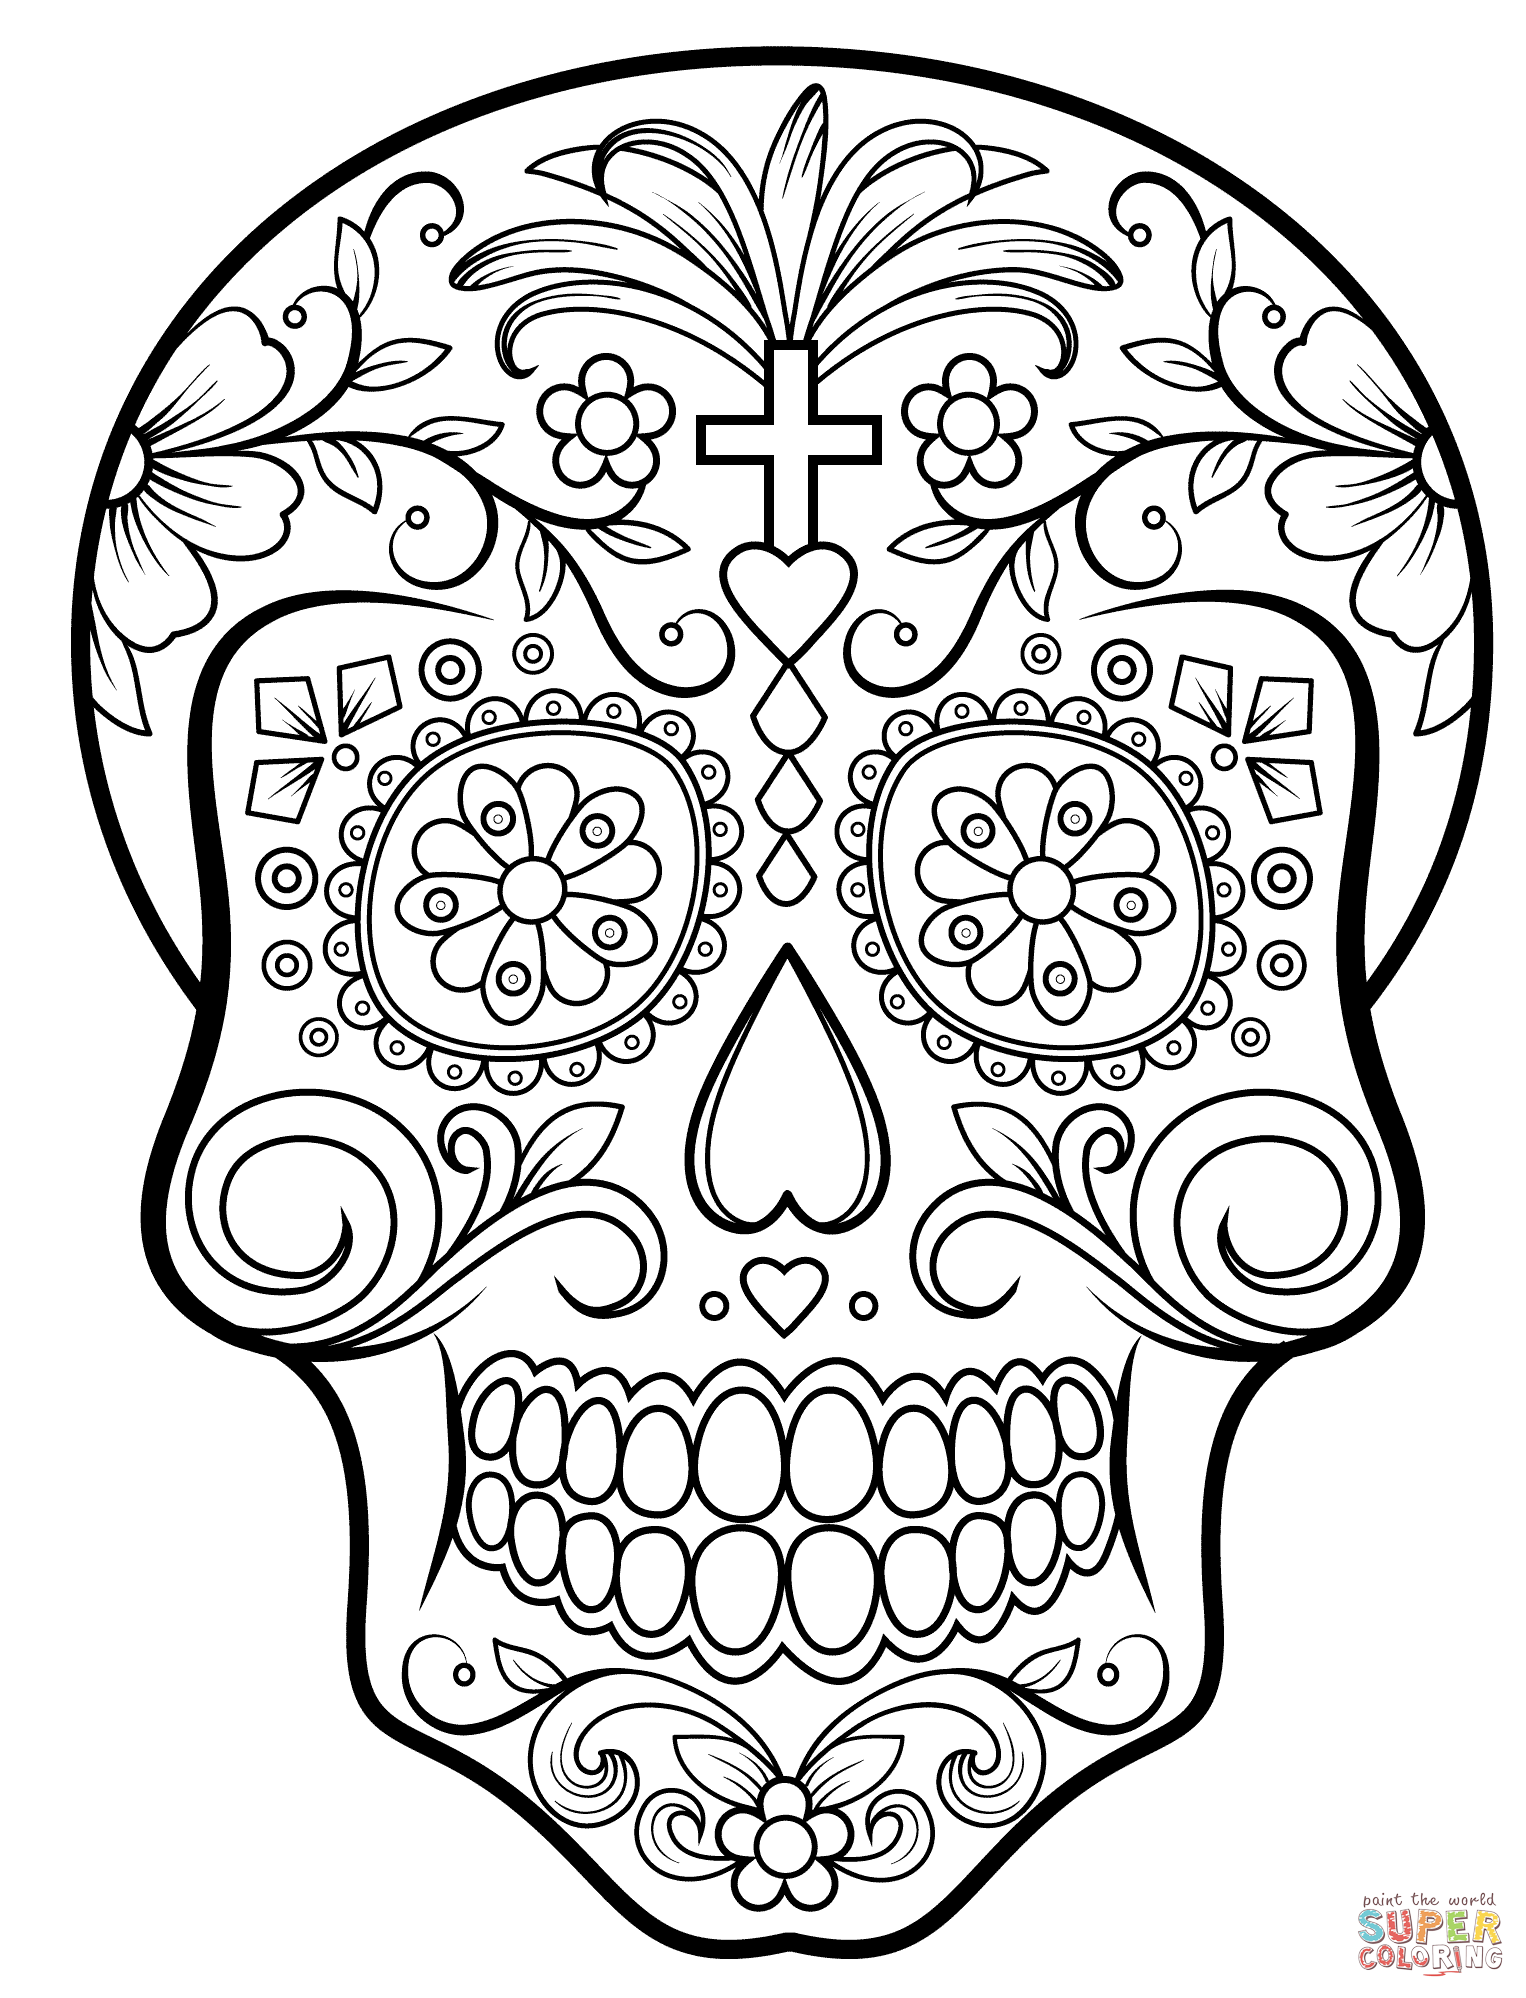 day of the dead sugar skull coloring page free printable - Sugar Skull Coloring Book